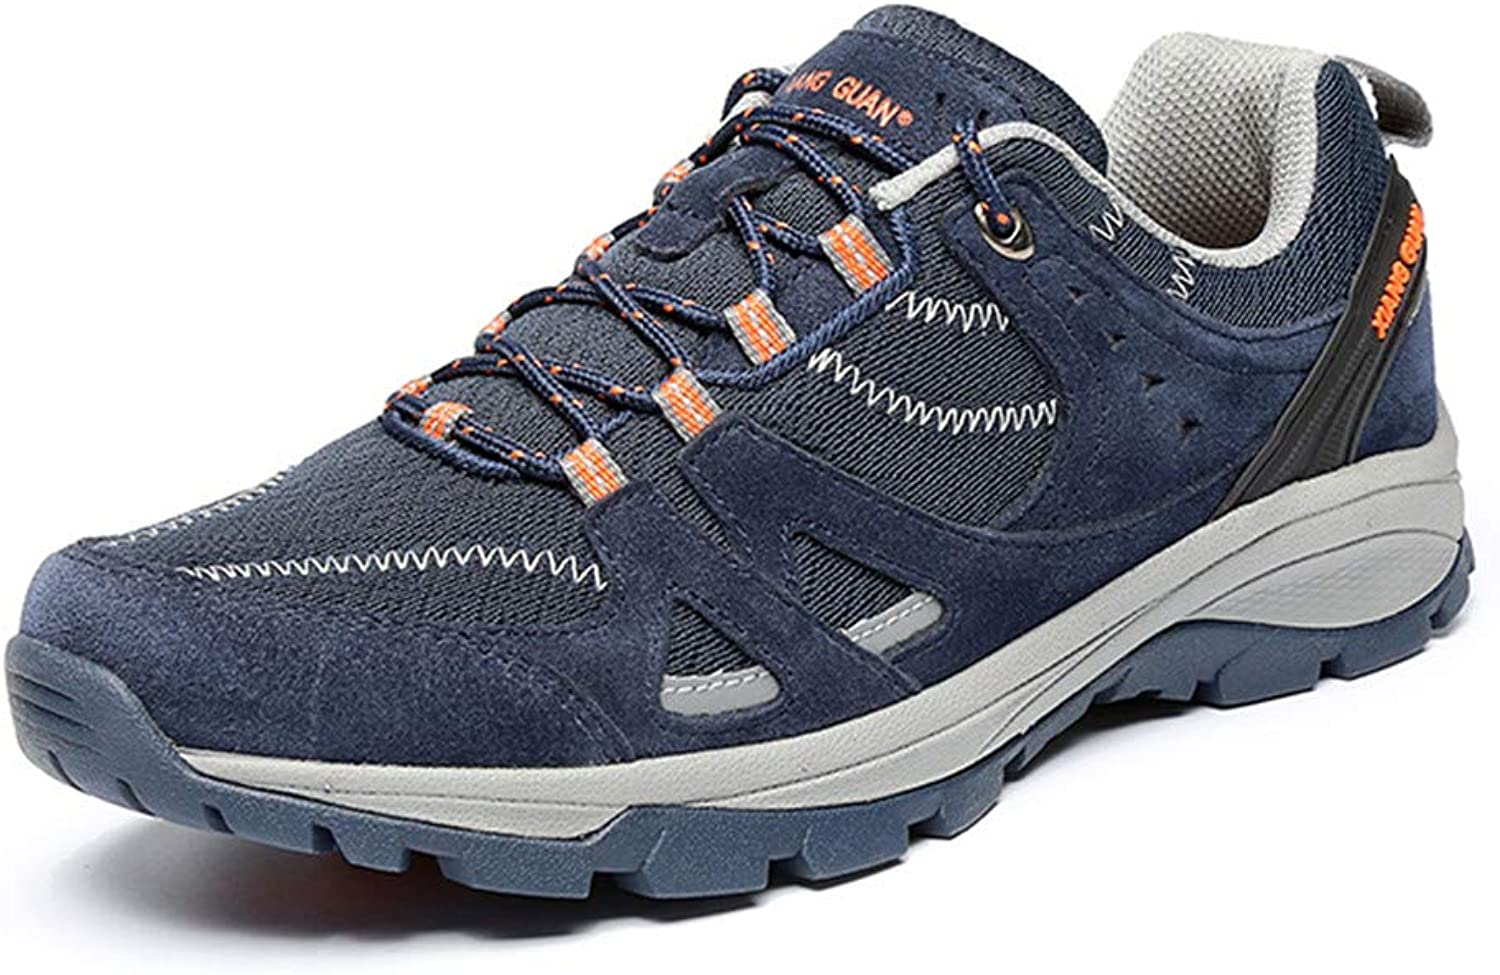 Men's Hiking shoes, Light Walking shoes Unisex Low Help Breathable Non Slip Fashion Outdoor Sports shoes,bluee,39